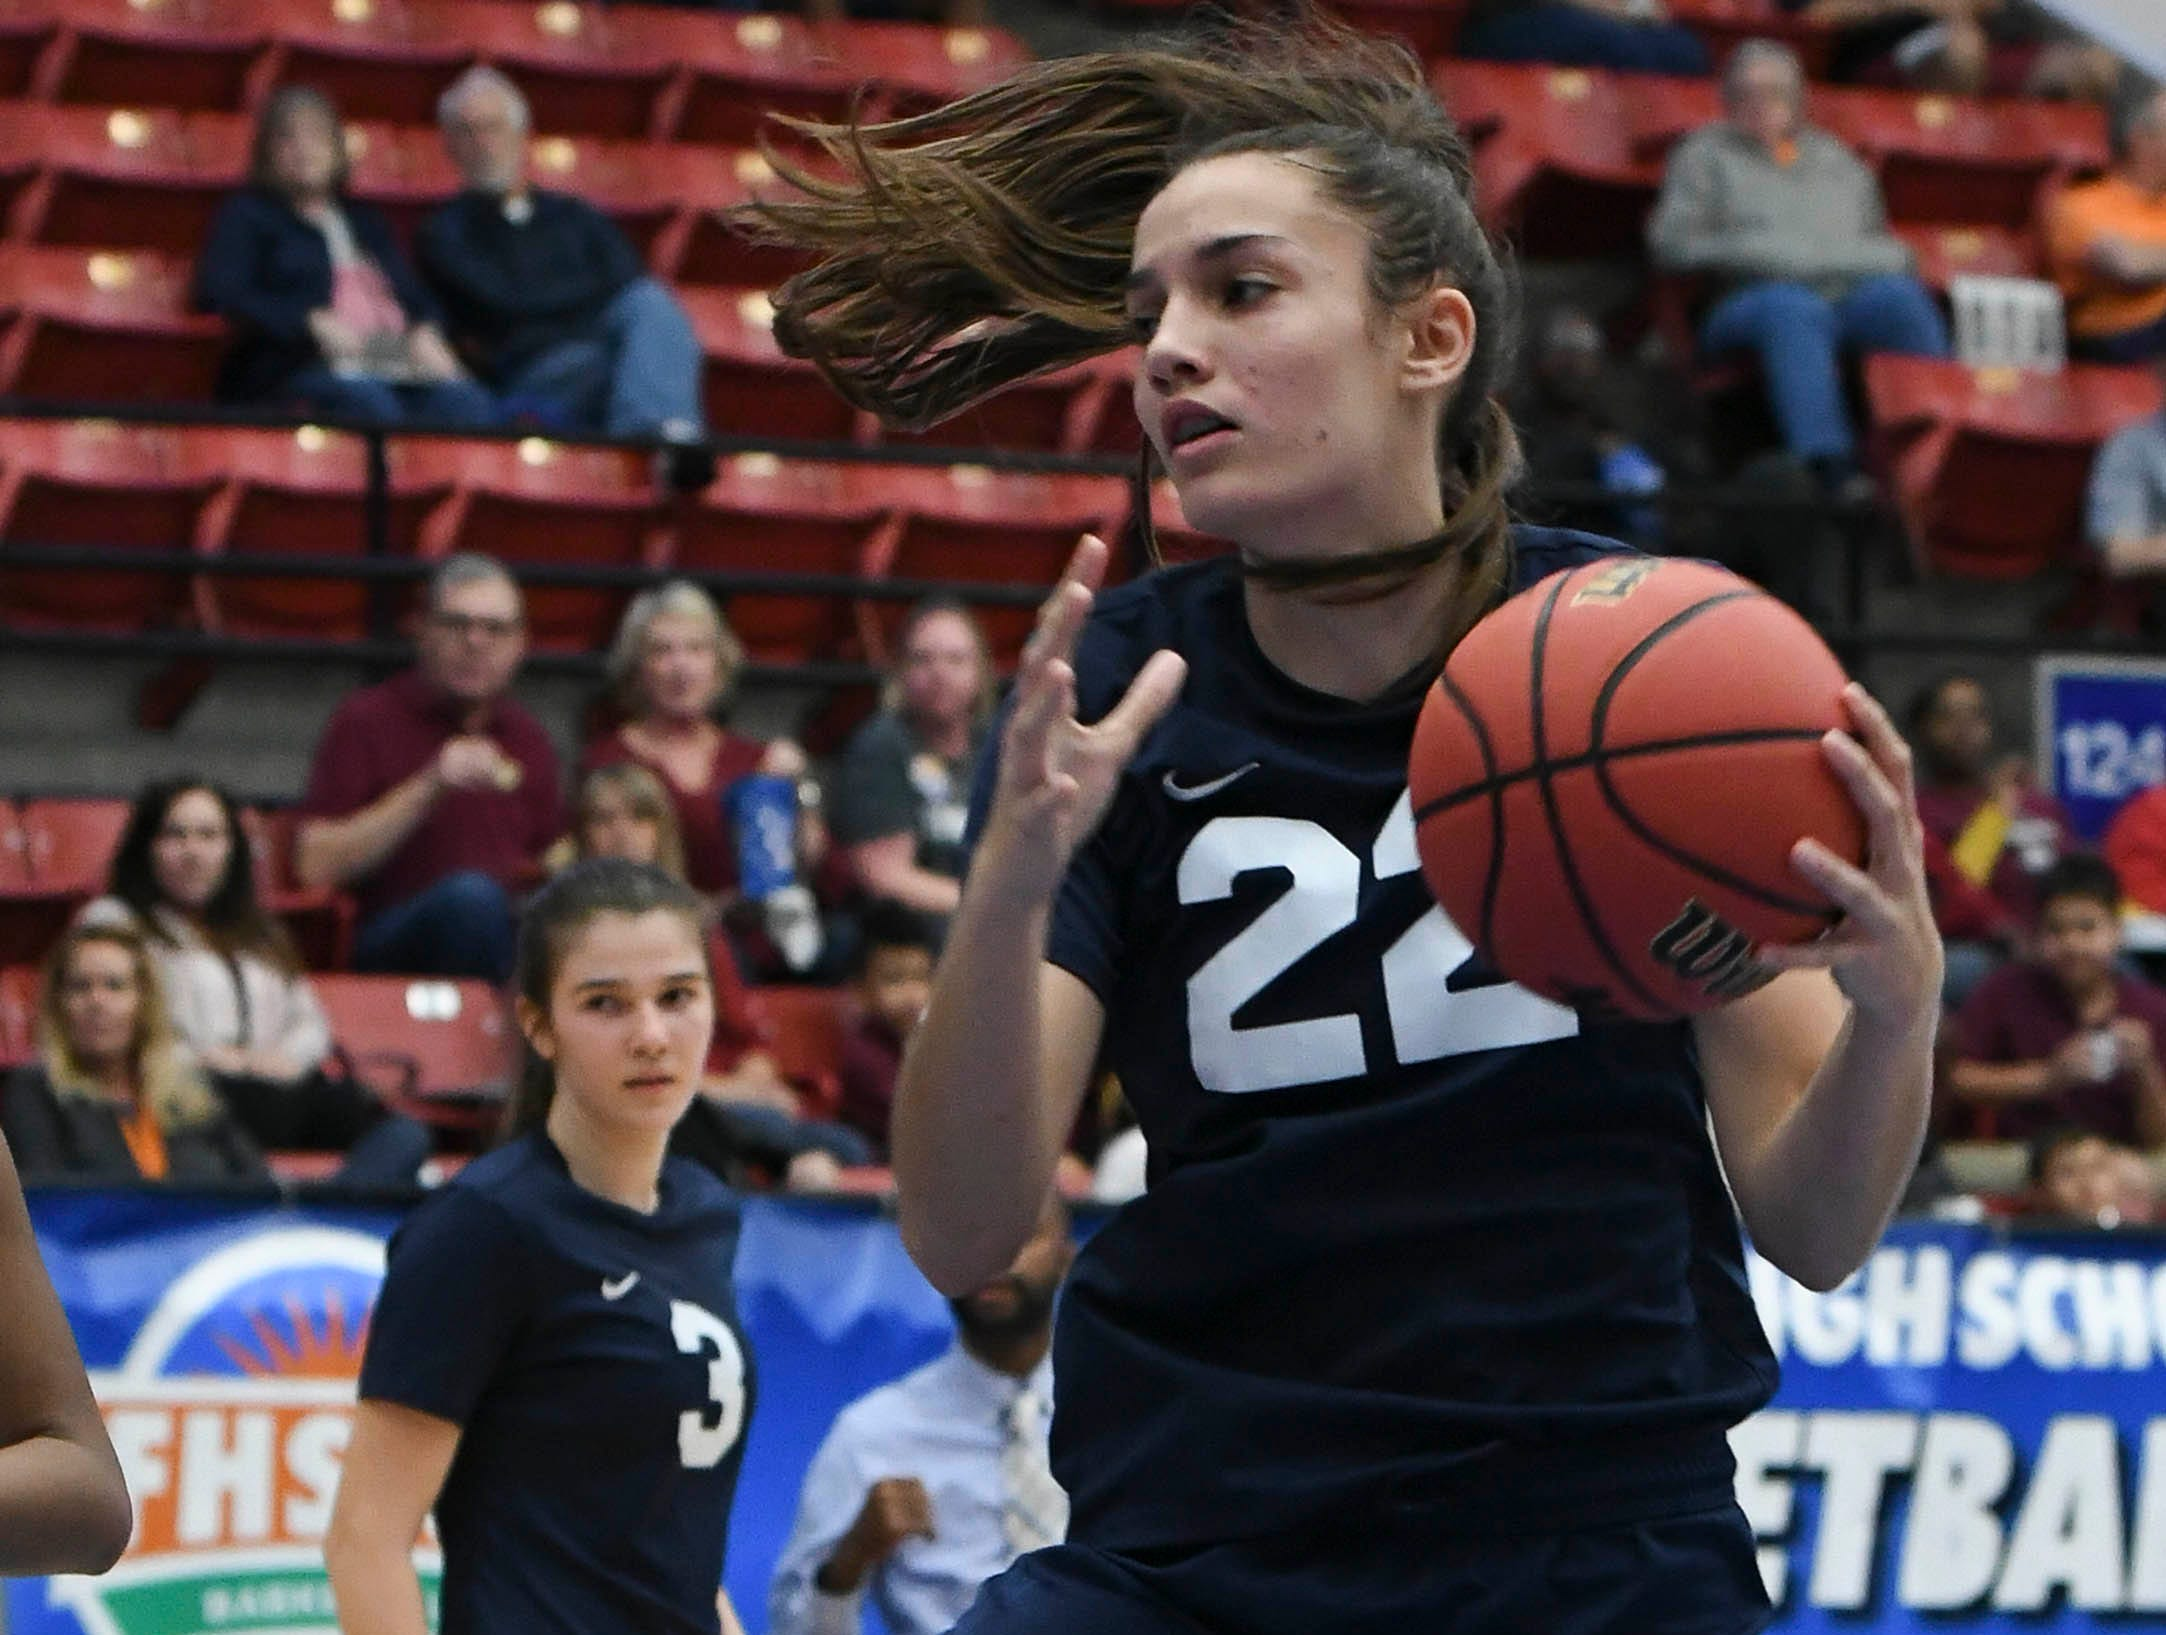 Aleah Sorrentino of Florida Prep grabs a rebound during Tuesday's Class 2A state championship game.